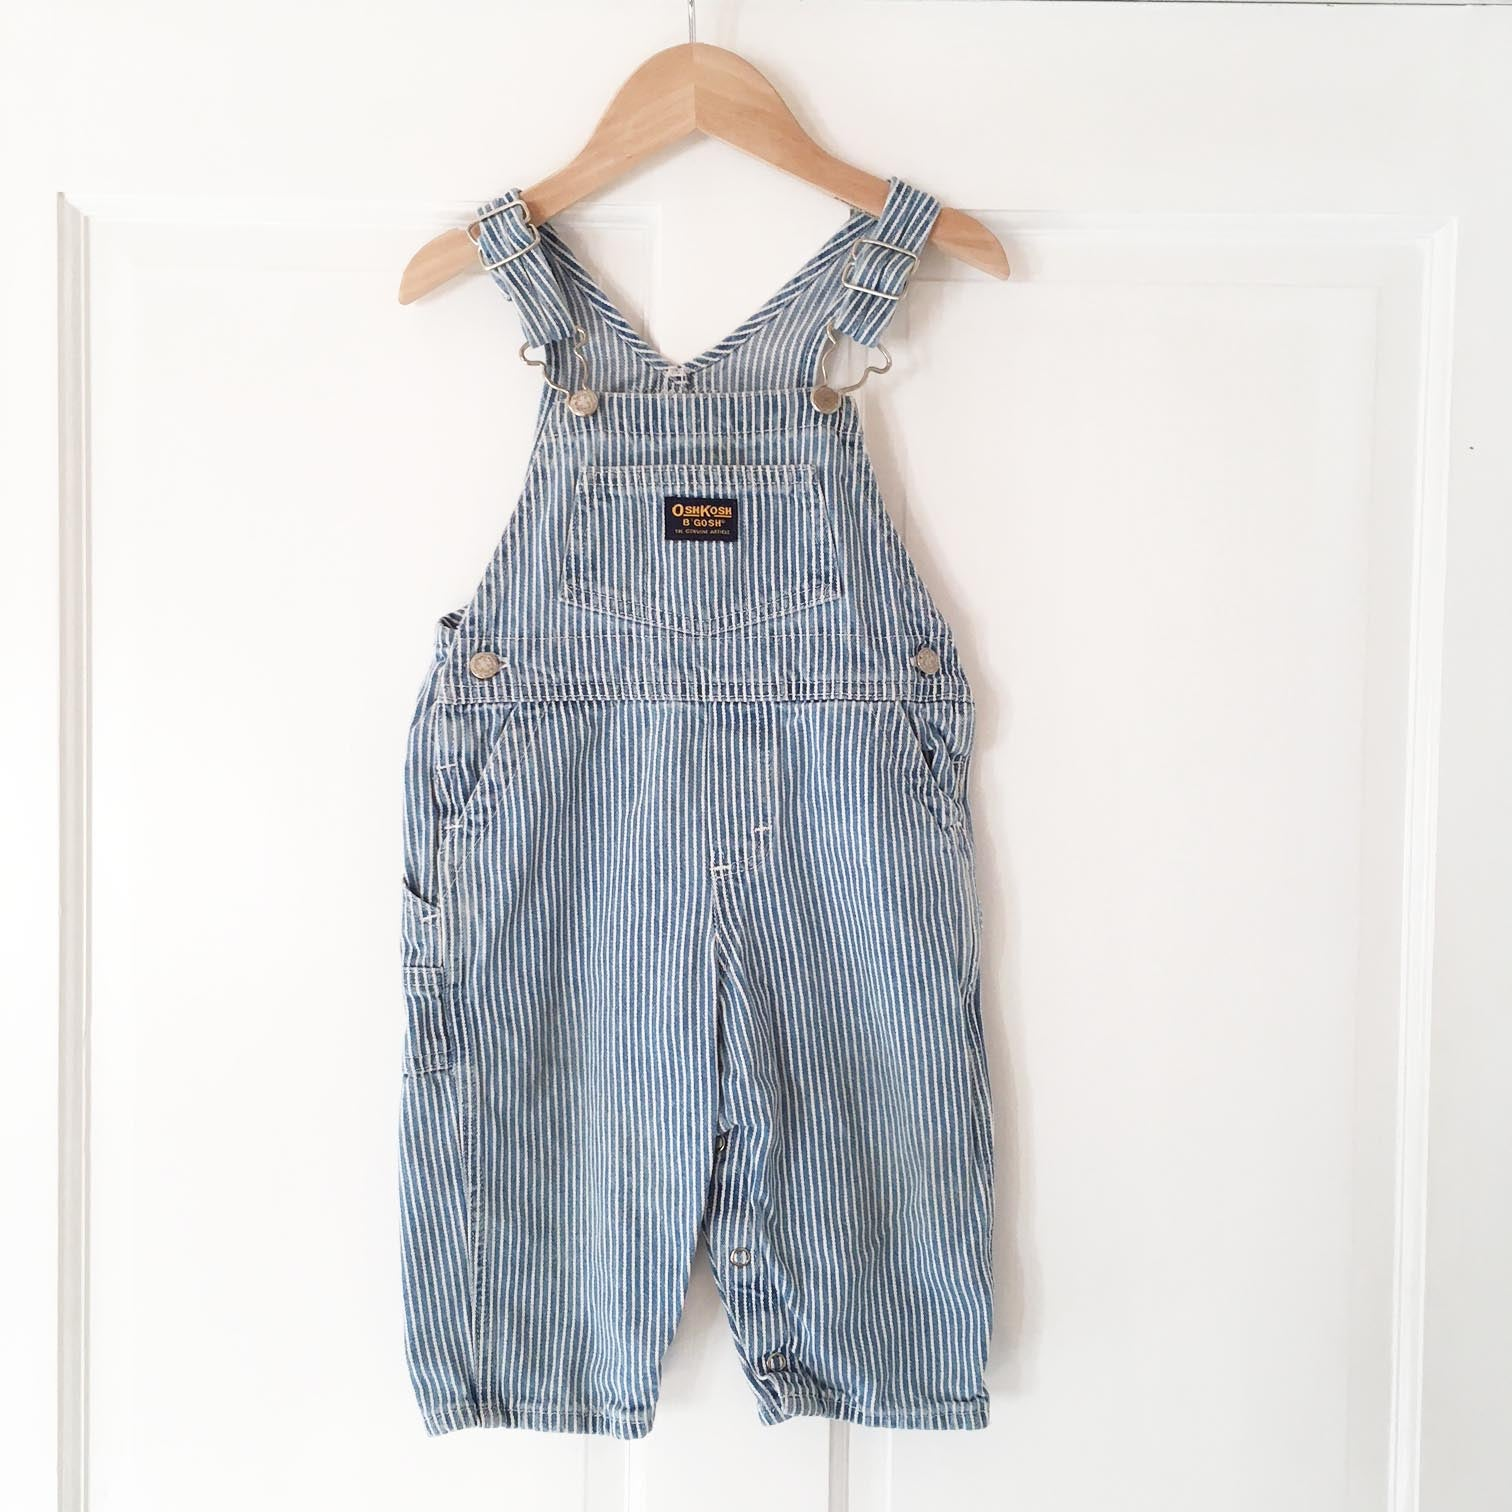 Little Osh Kosh toddler overalls size 2-3